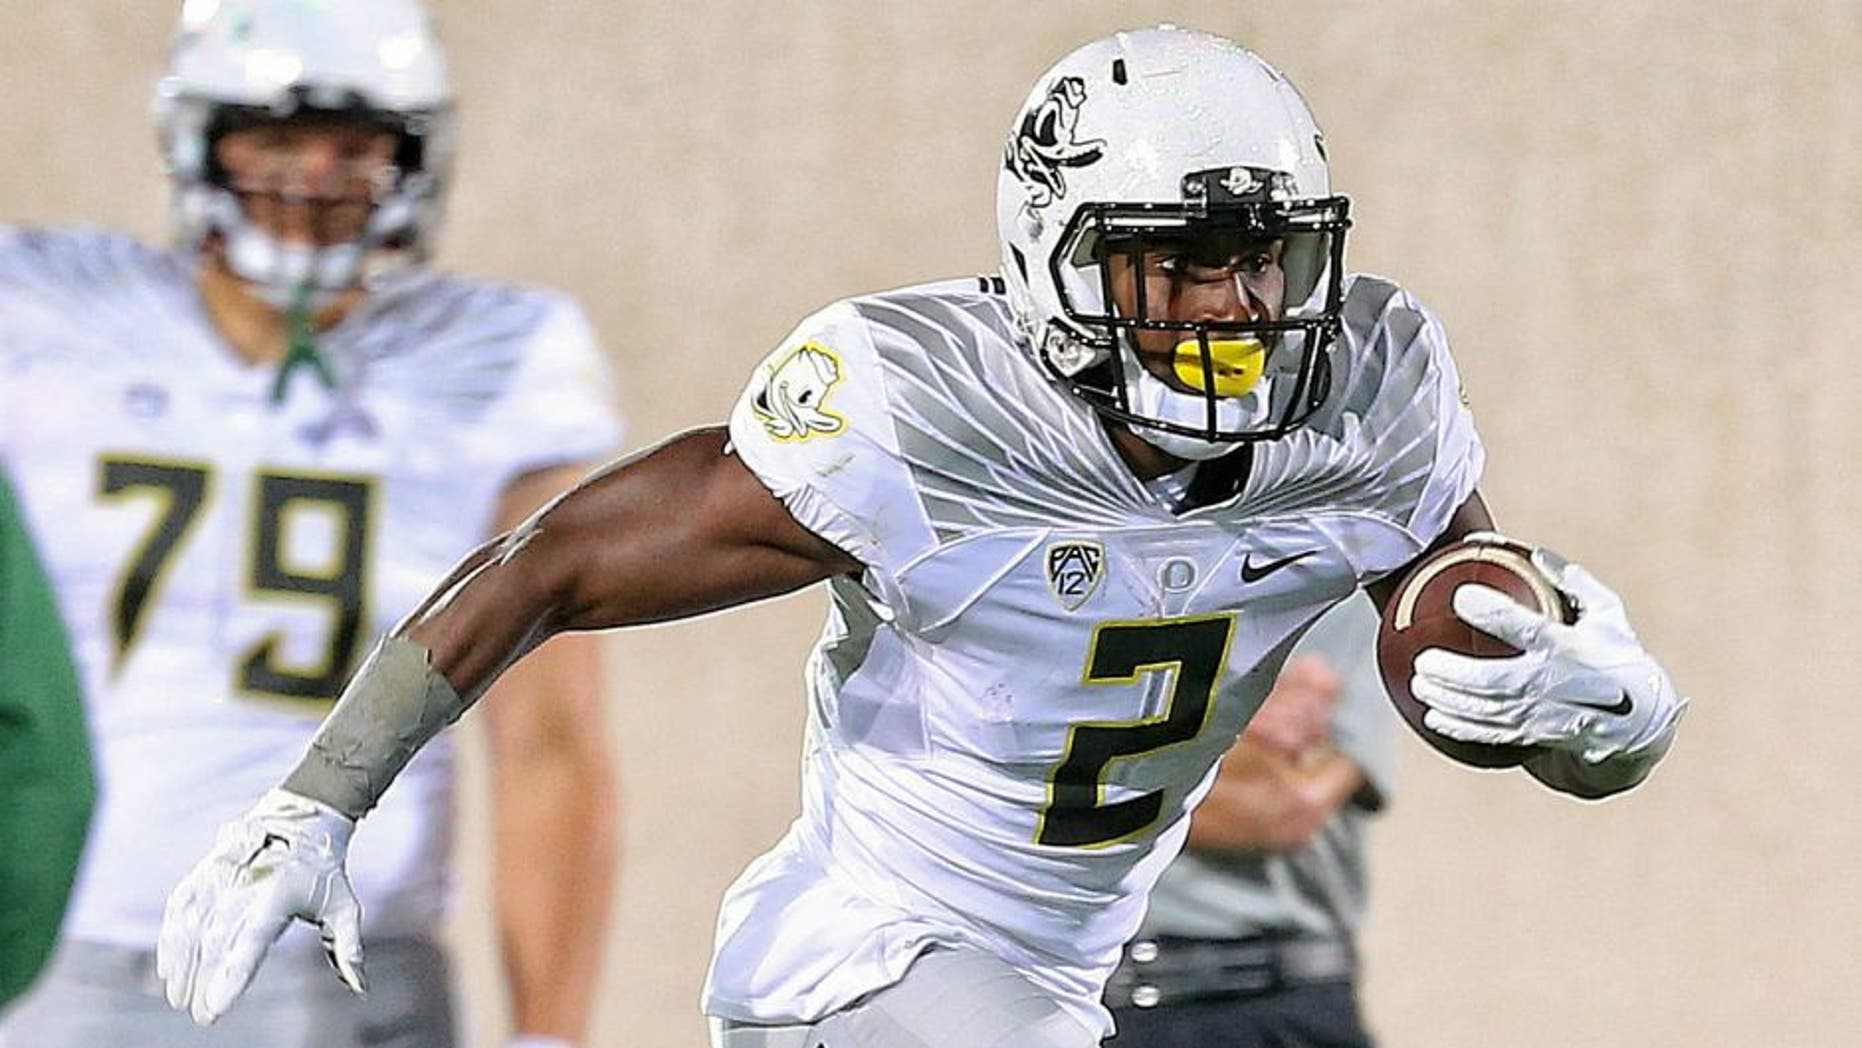 Sep 12, 2015; East Lansing, MI, USA; Oregon Ducks wide receiver Bralon Addison (2) runs for yards after a catch against the Michigan State Spartans during the 1st half of a game at Spartan Stadium. Mandatory Credit: Mike Carter-USA TODAY Sports